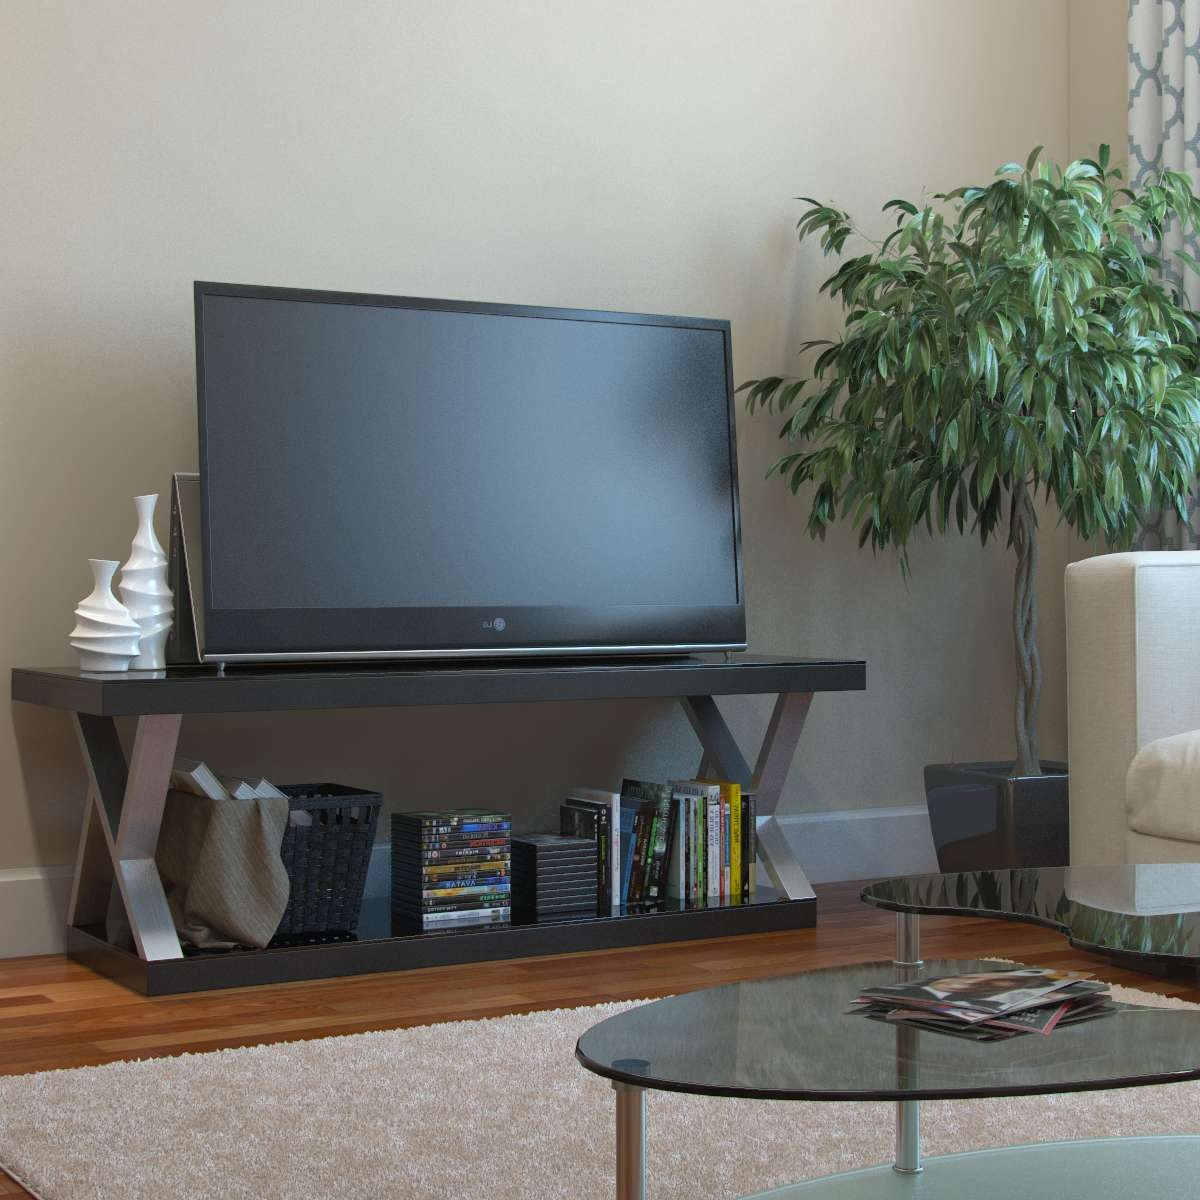 Ryan Rove Hayden Double V Design 60 Inch Modern Tv Stand Within Modern Tv Stands For 60 Inch Tvs (View 13 of 15)